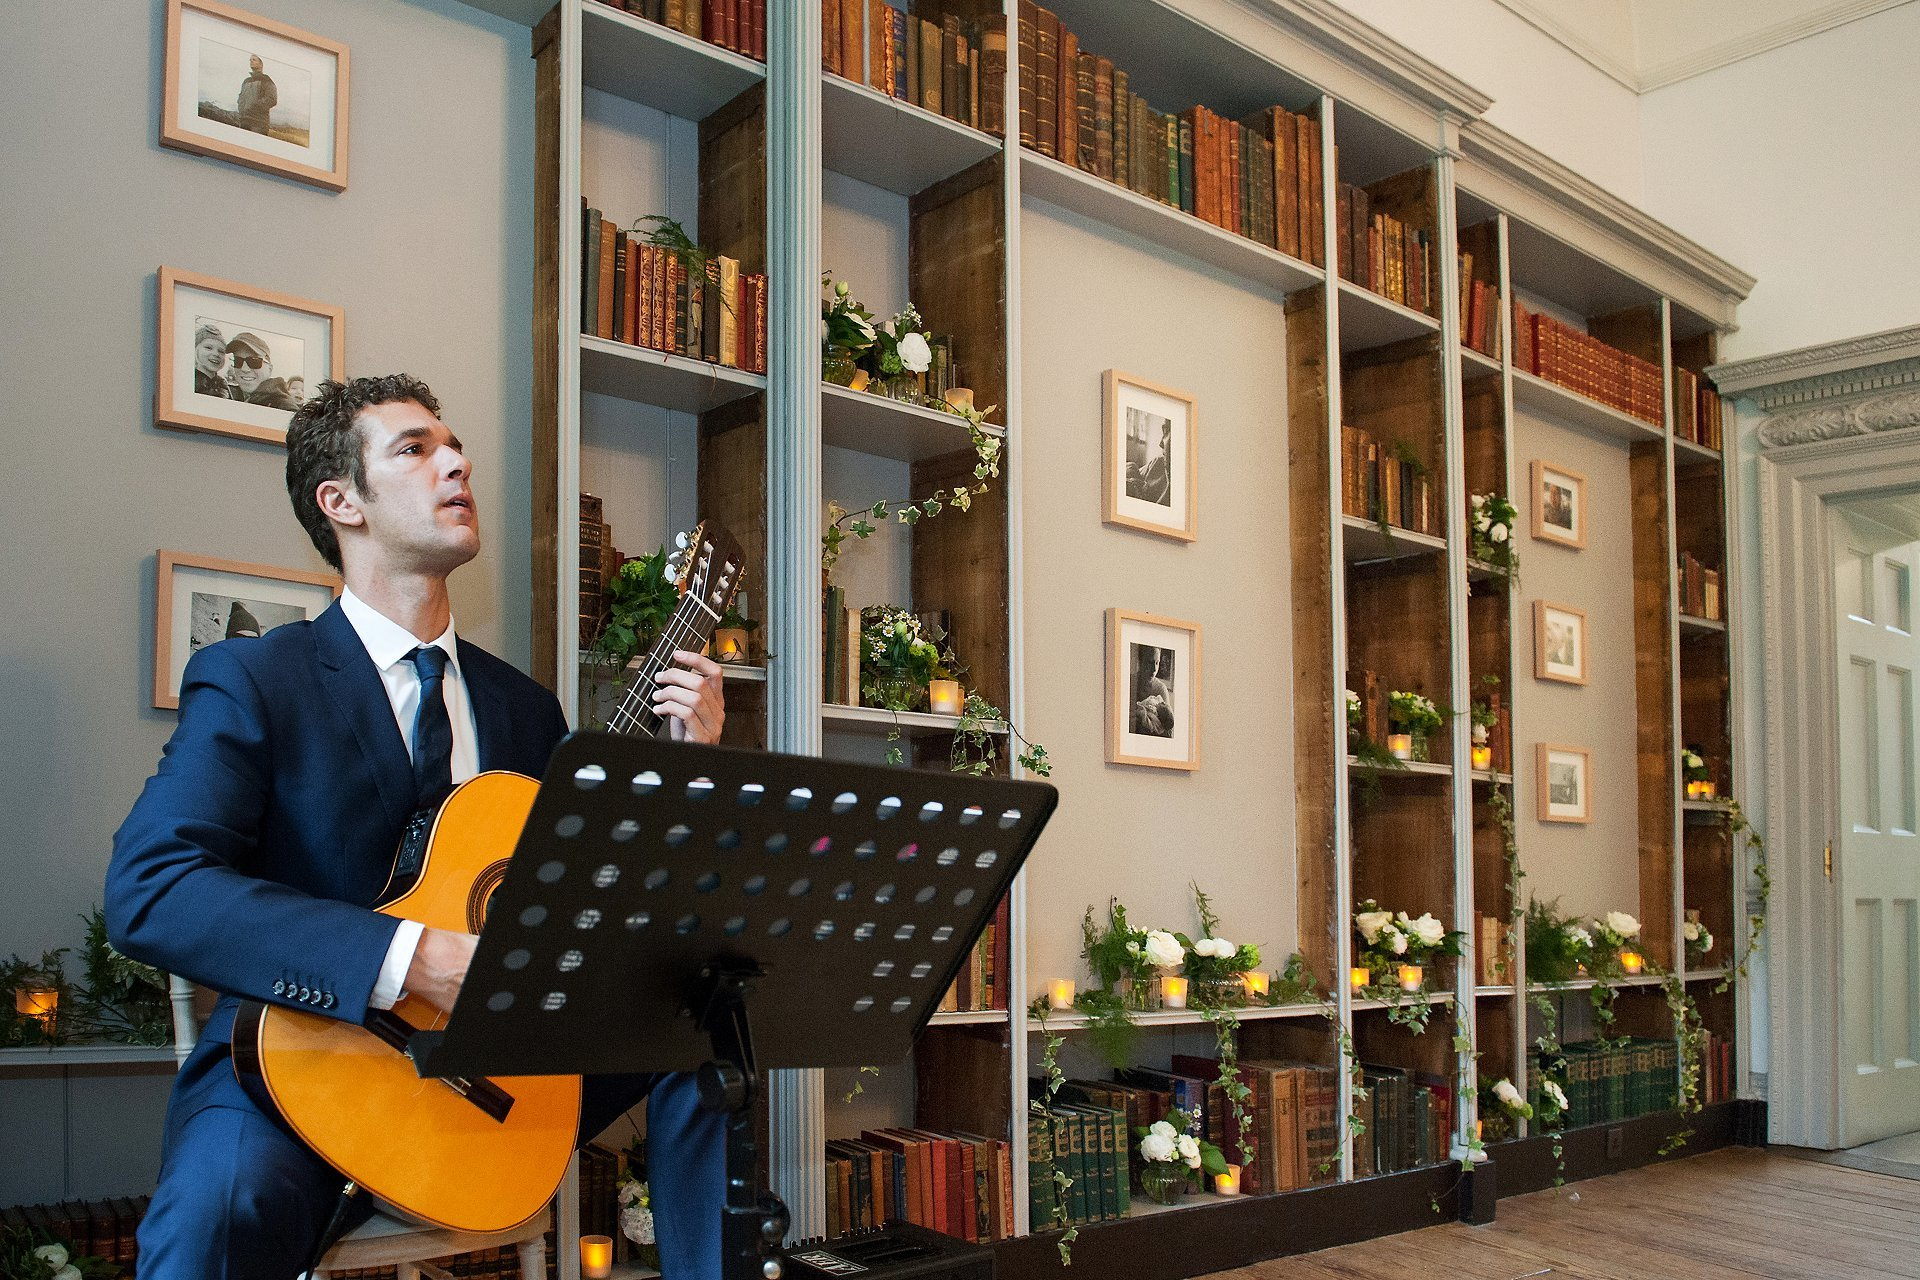 Fulham Palace Wedding Photography - guitarist Peter Black plays a classical piece for the bride's entrance into the Bishop Terrick's Drawing Room at Fulham Palace with the bookcase behind him decorated with flowers and candles